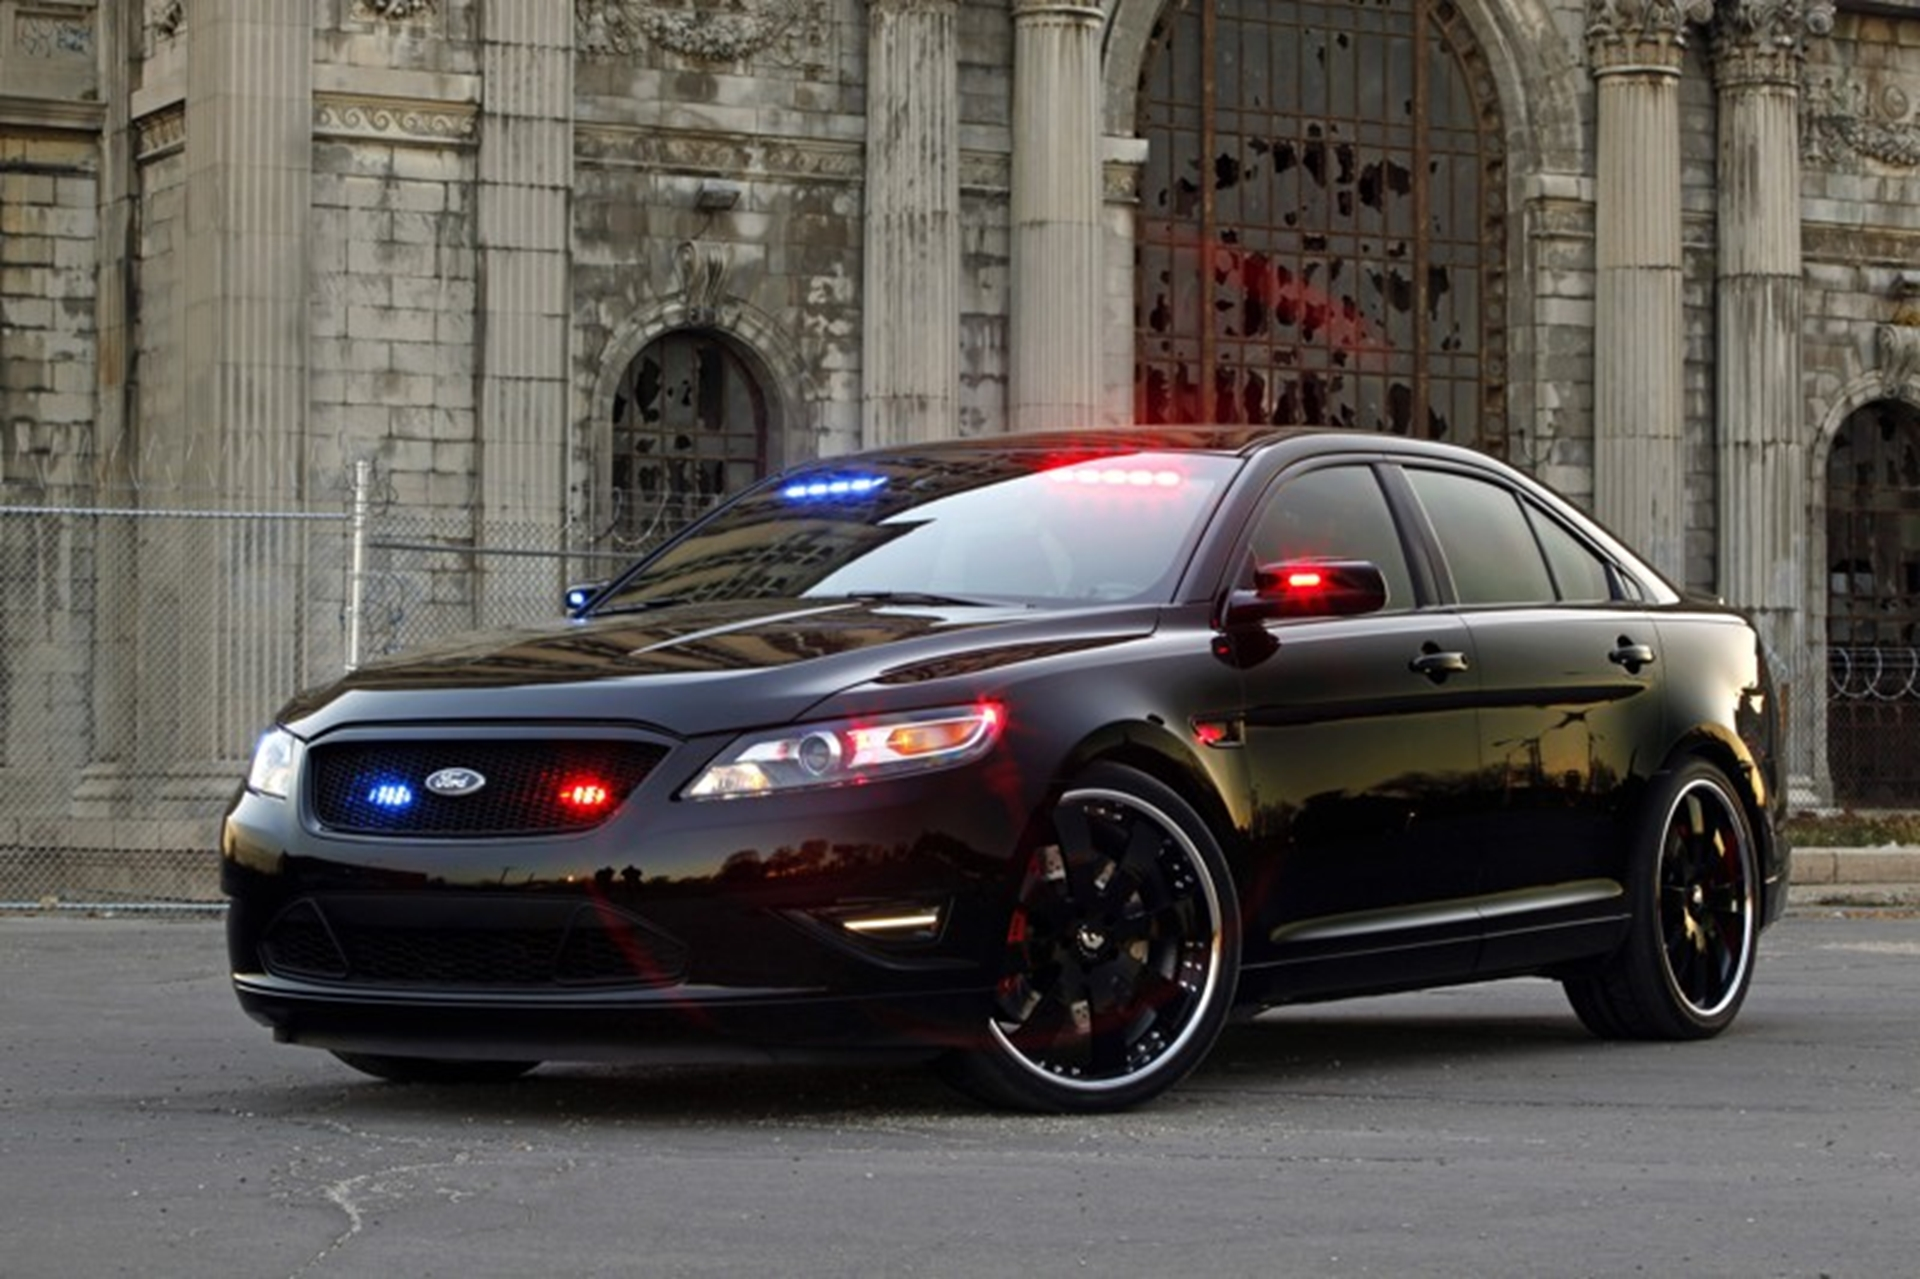 Ford Interceptor Police car